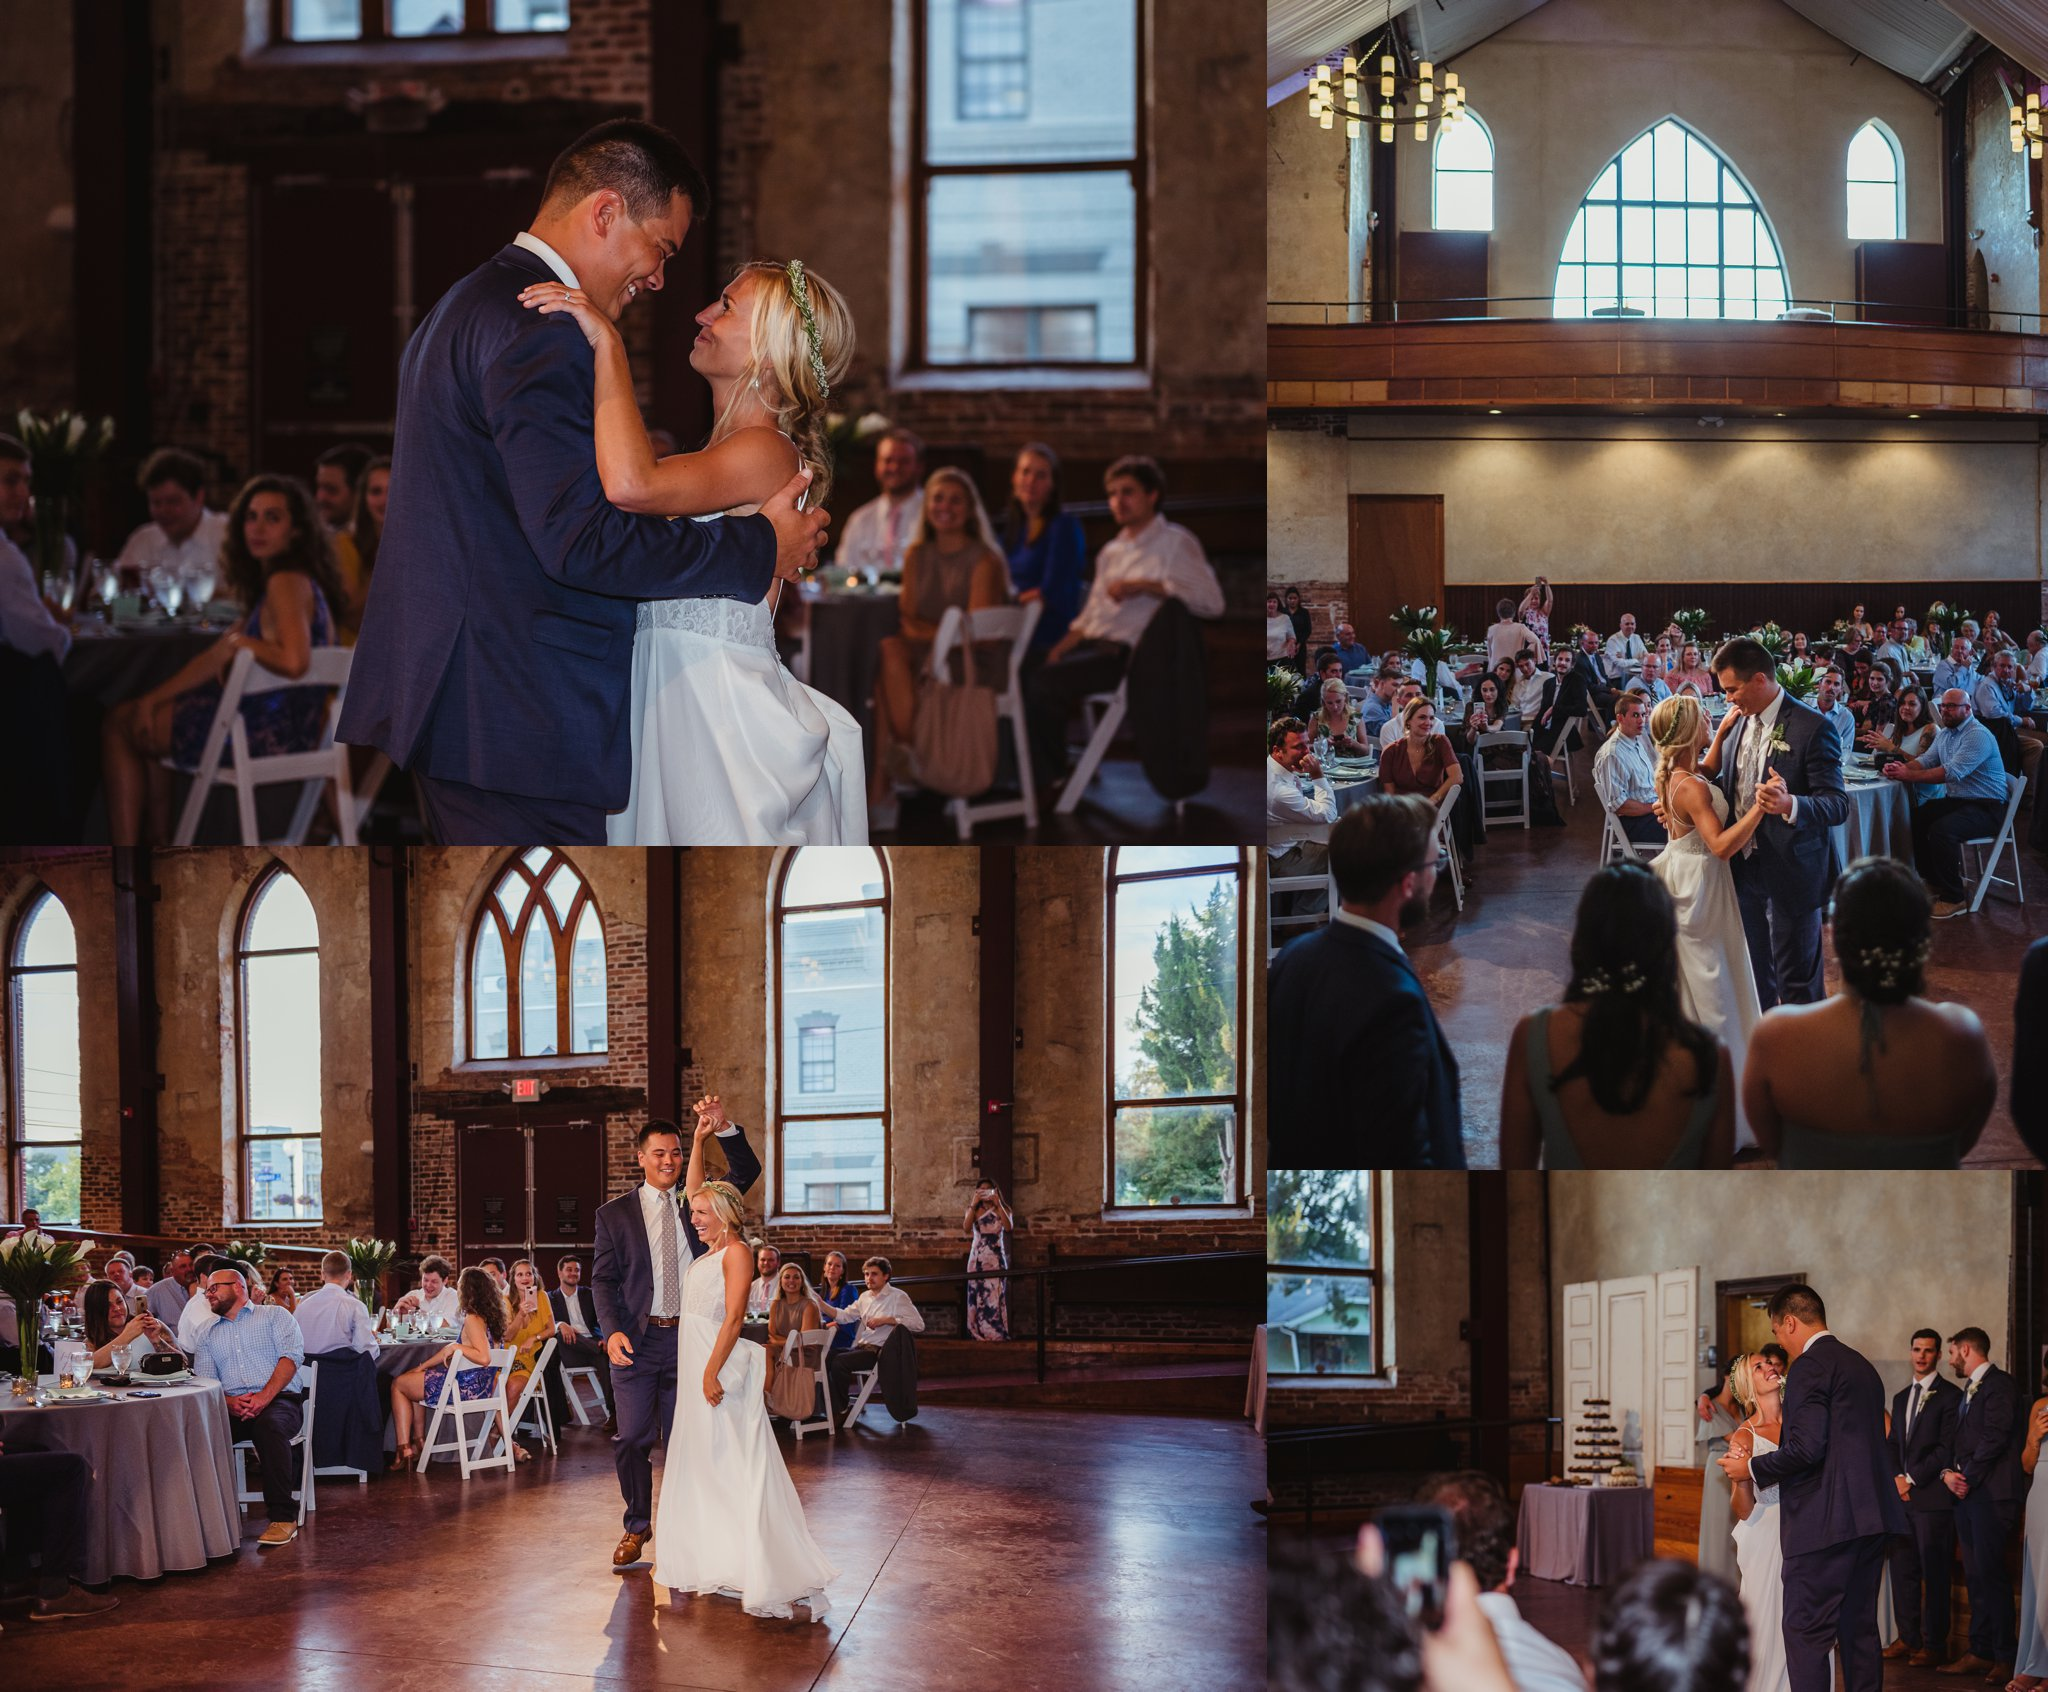 The bride and groom share a first dance and some laughs at their wedding reception in Wilmington, NC, photos by Rose Trail Images.